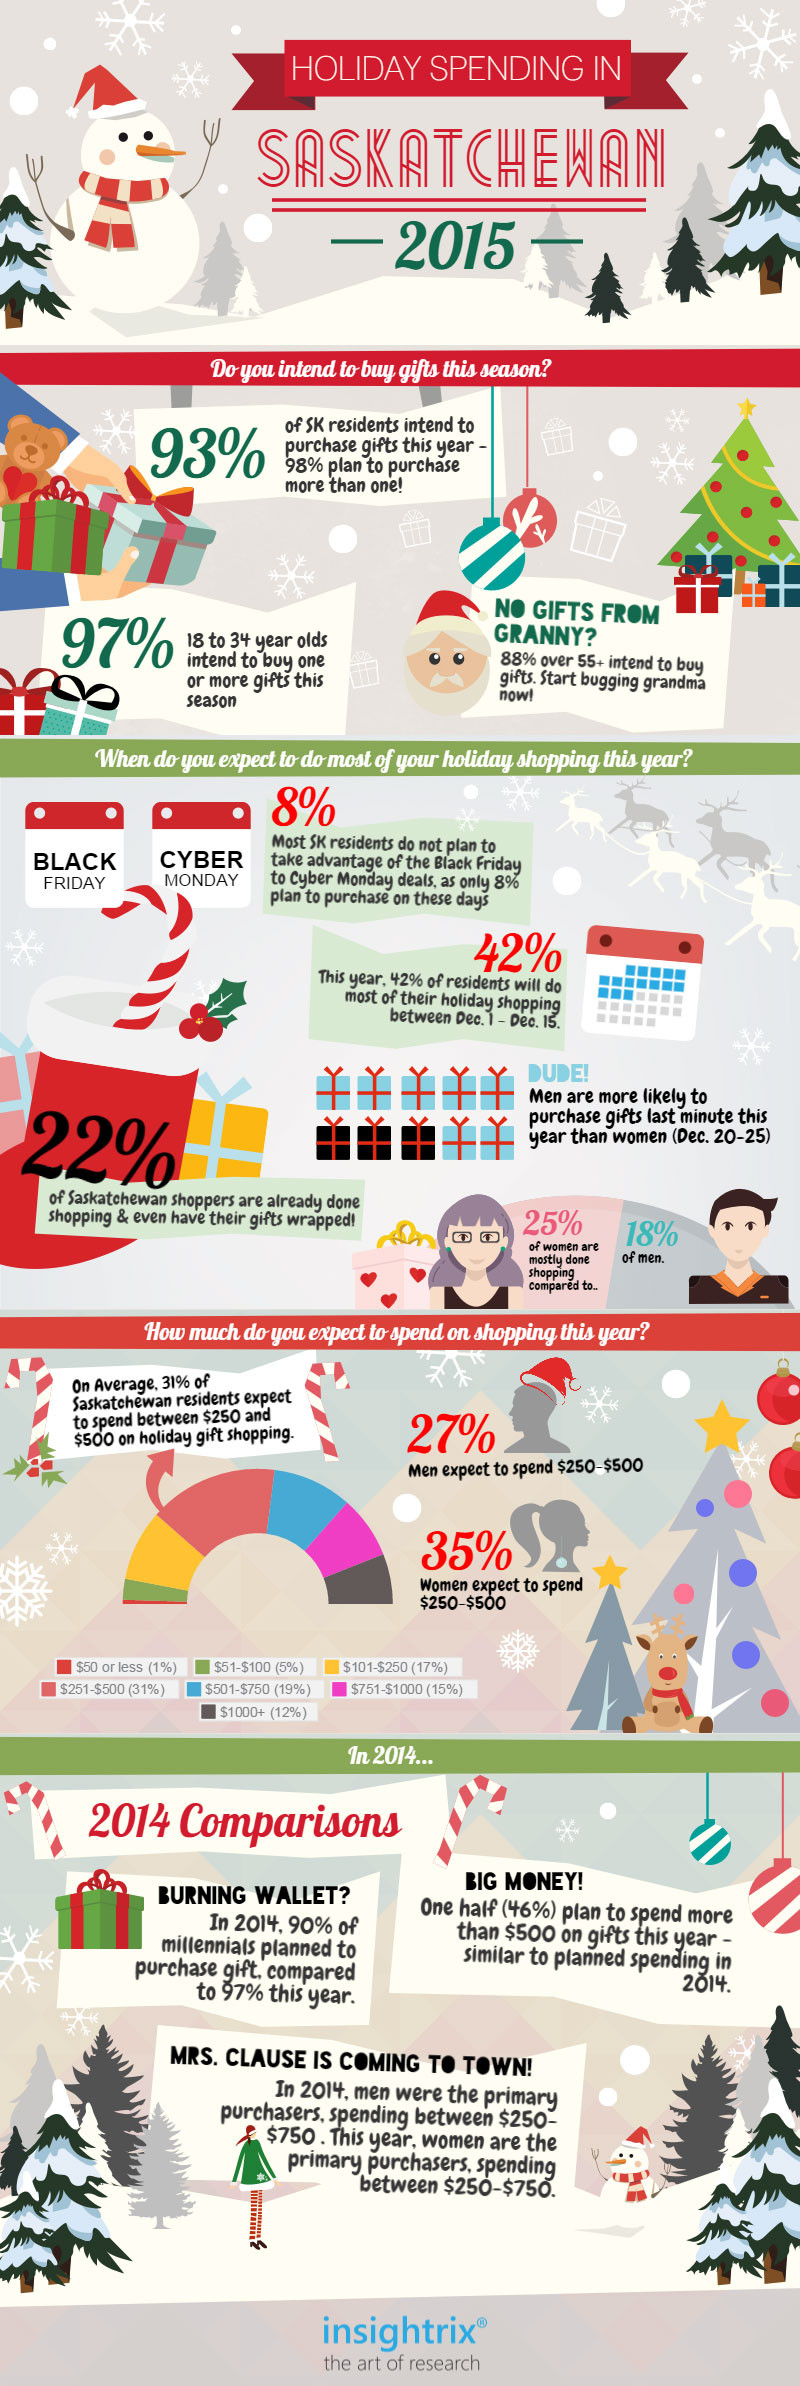 Insightrix-Holiday-Infographic-2015